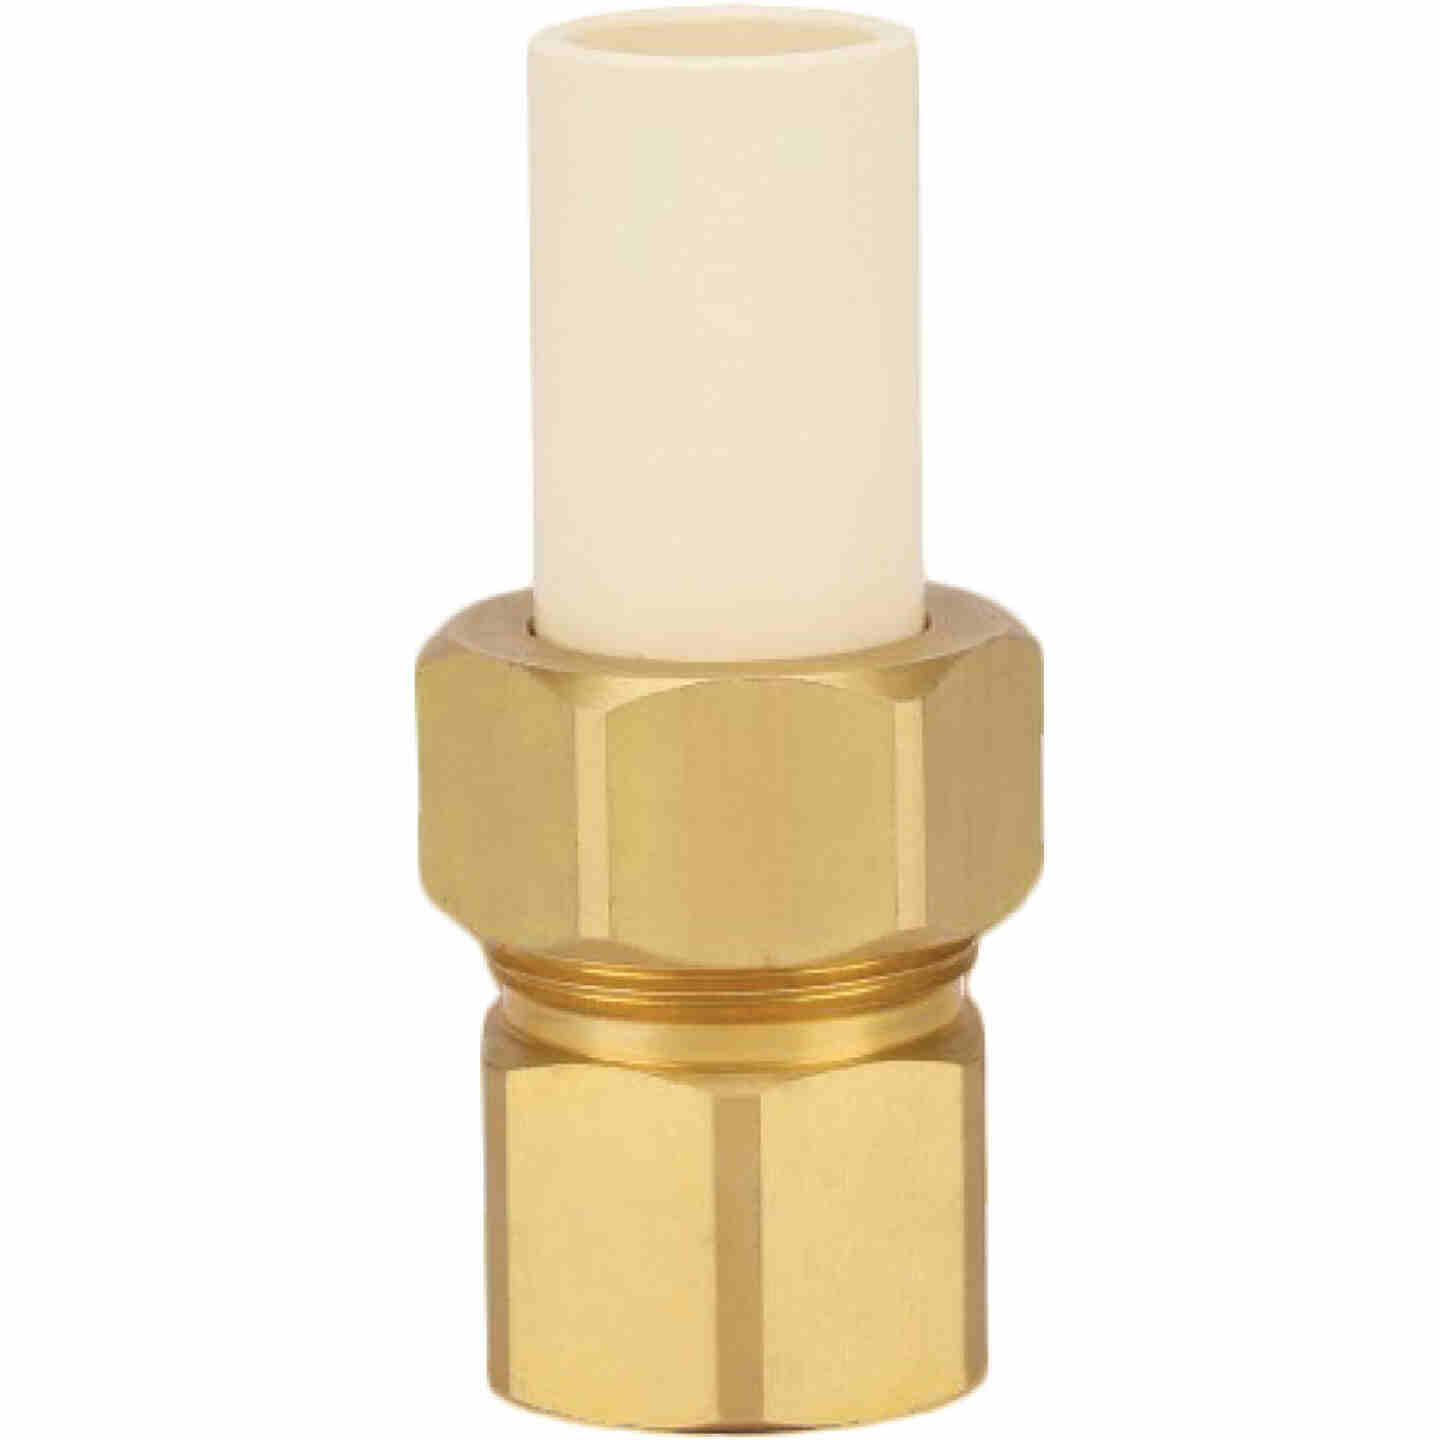 Homewerks 3/4 In. Slip x 3/4 In. FIP CPVC Transition Brass Union Image 1